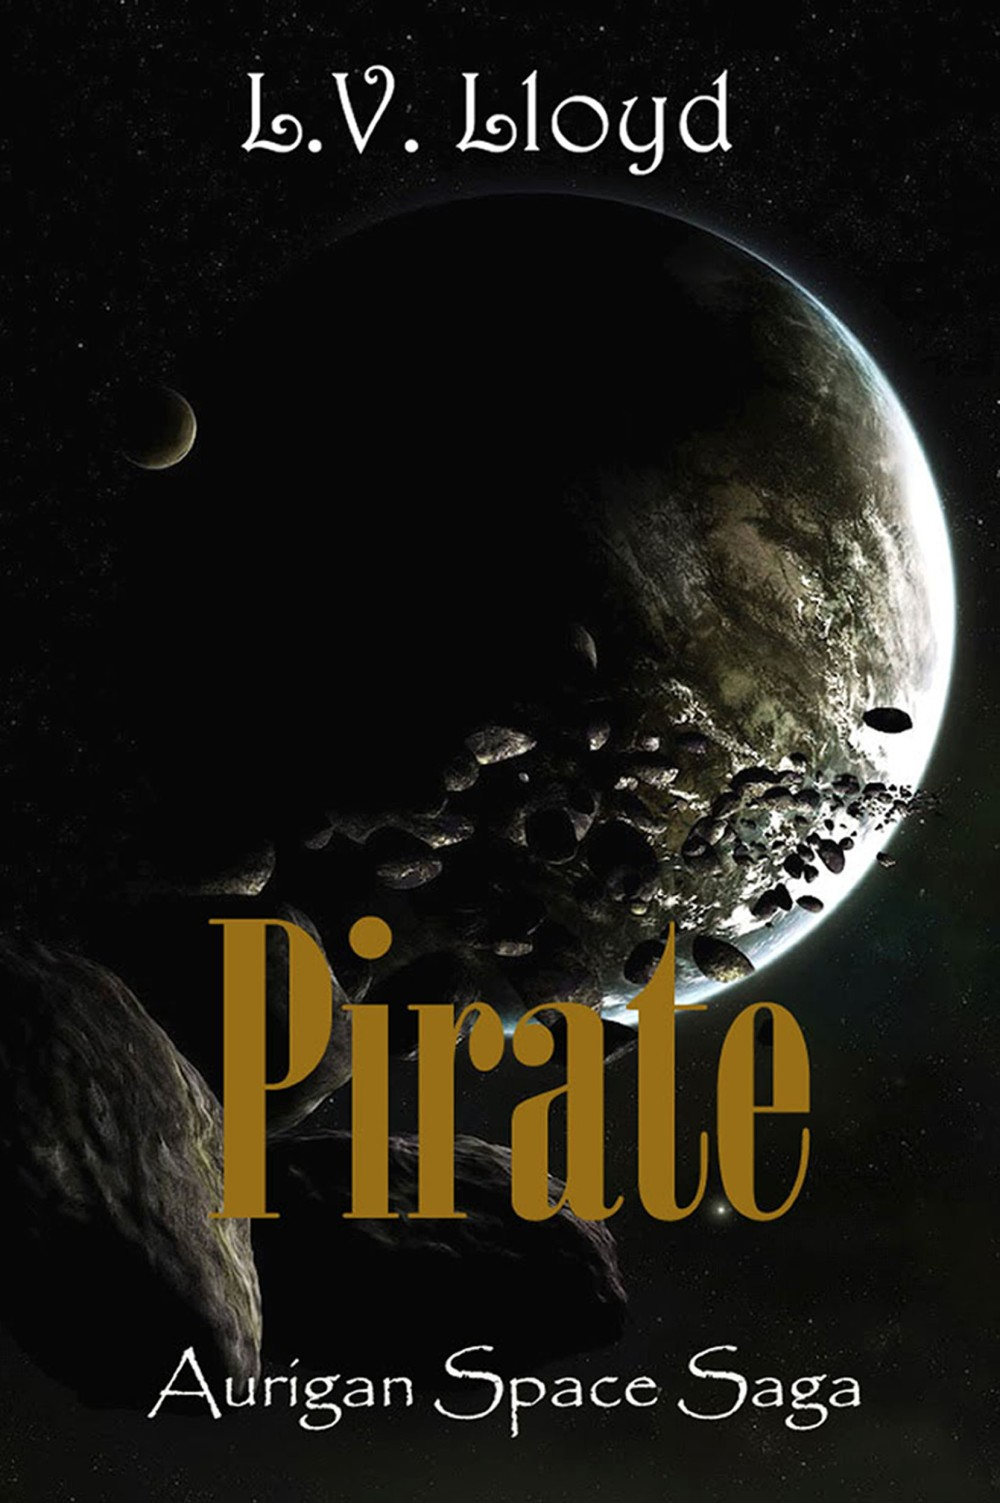 Pirate-27May lge